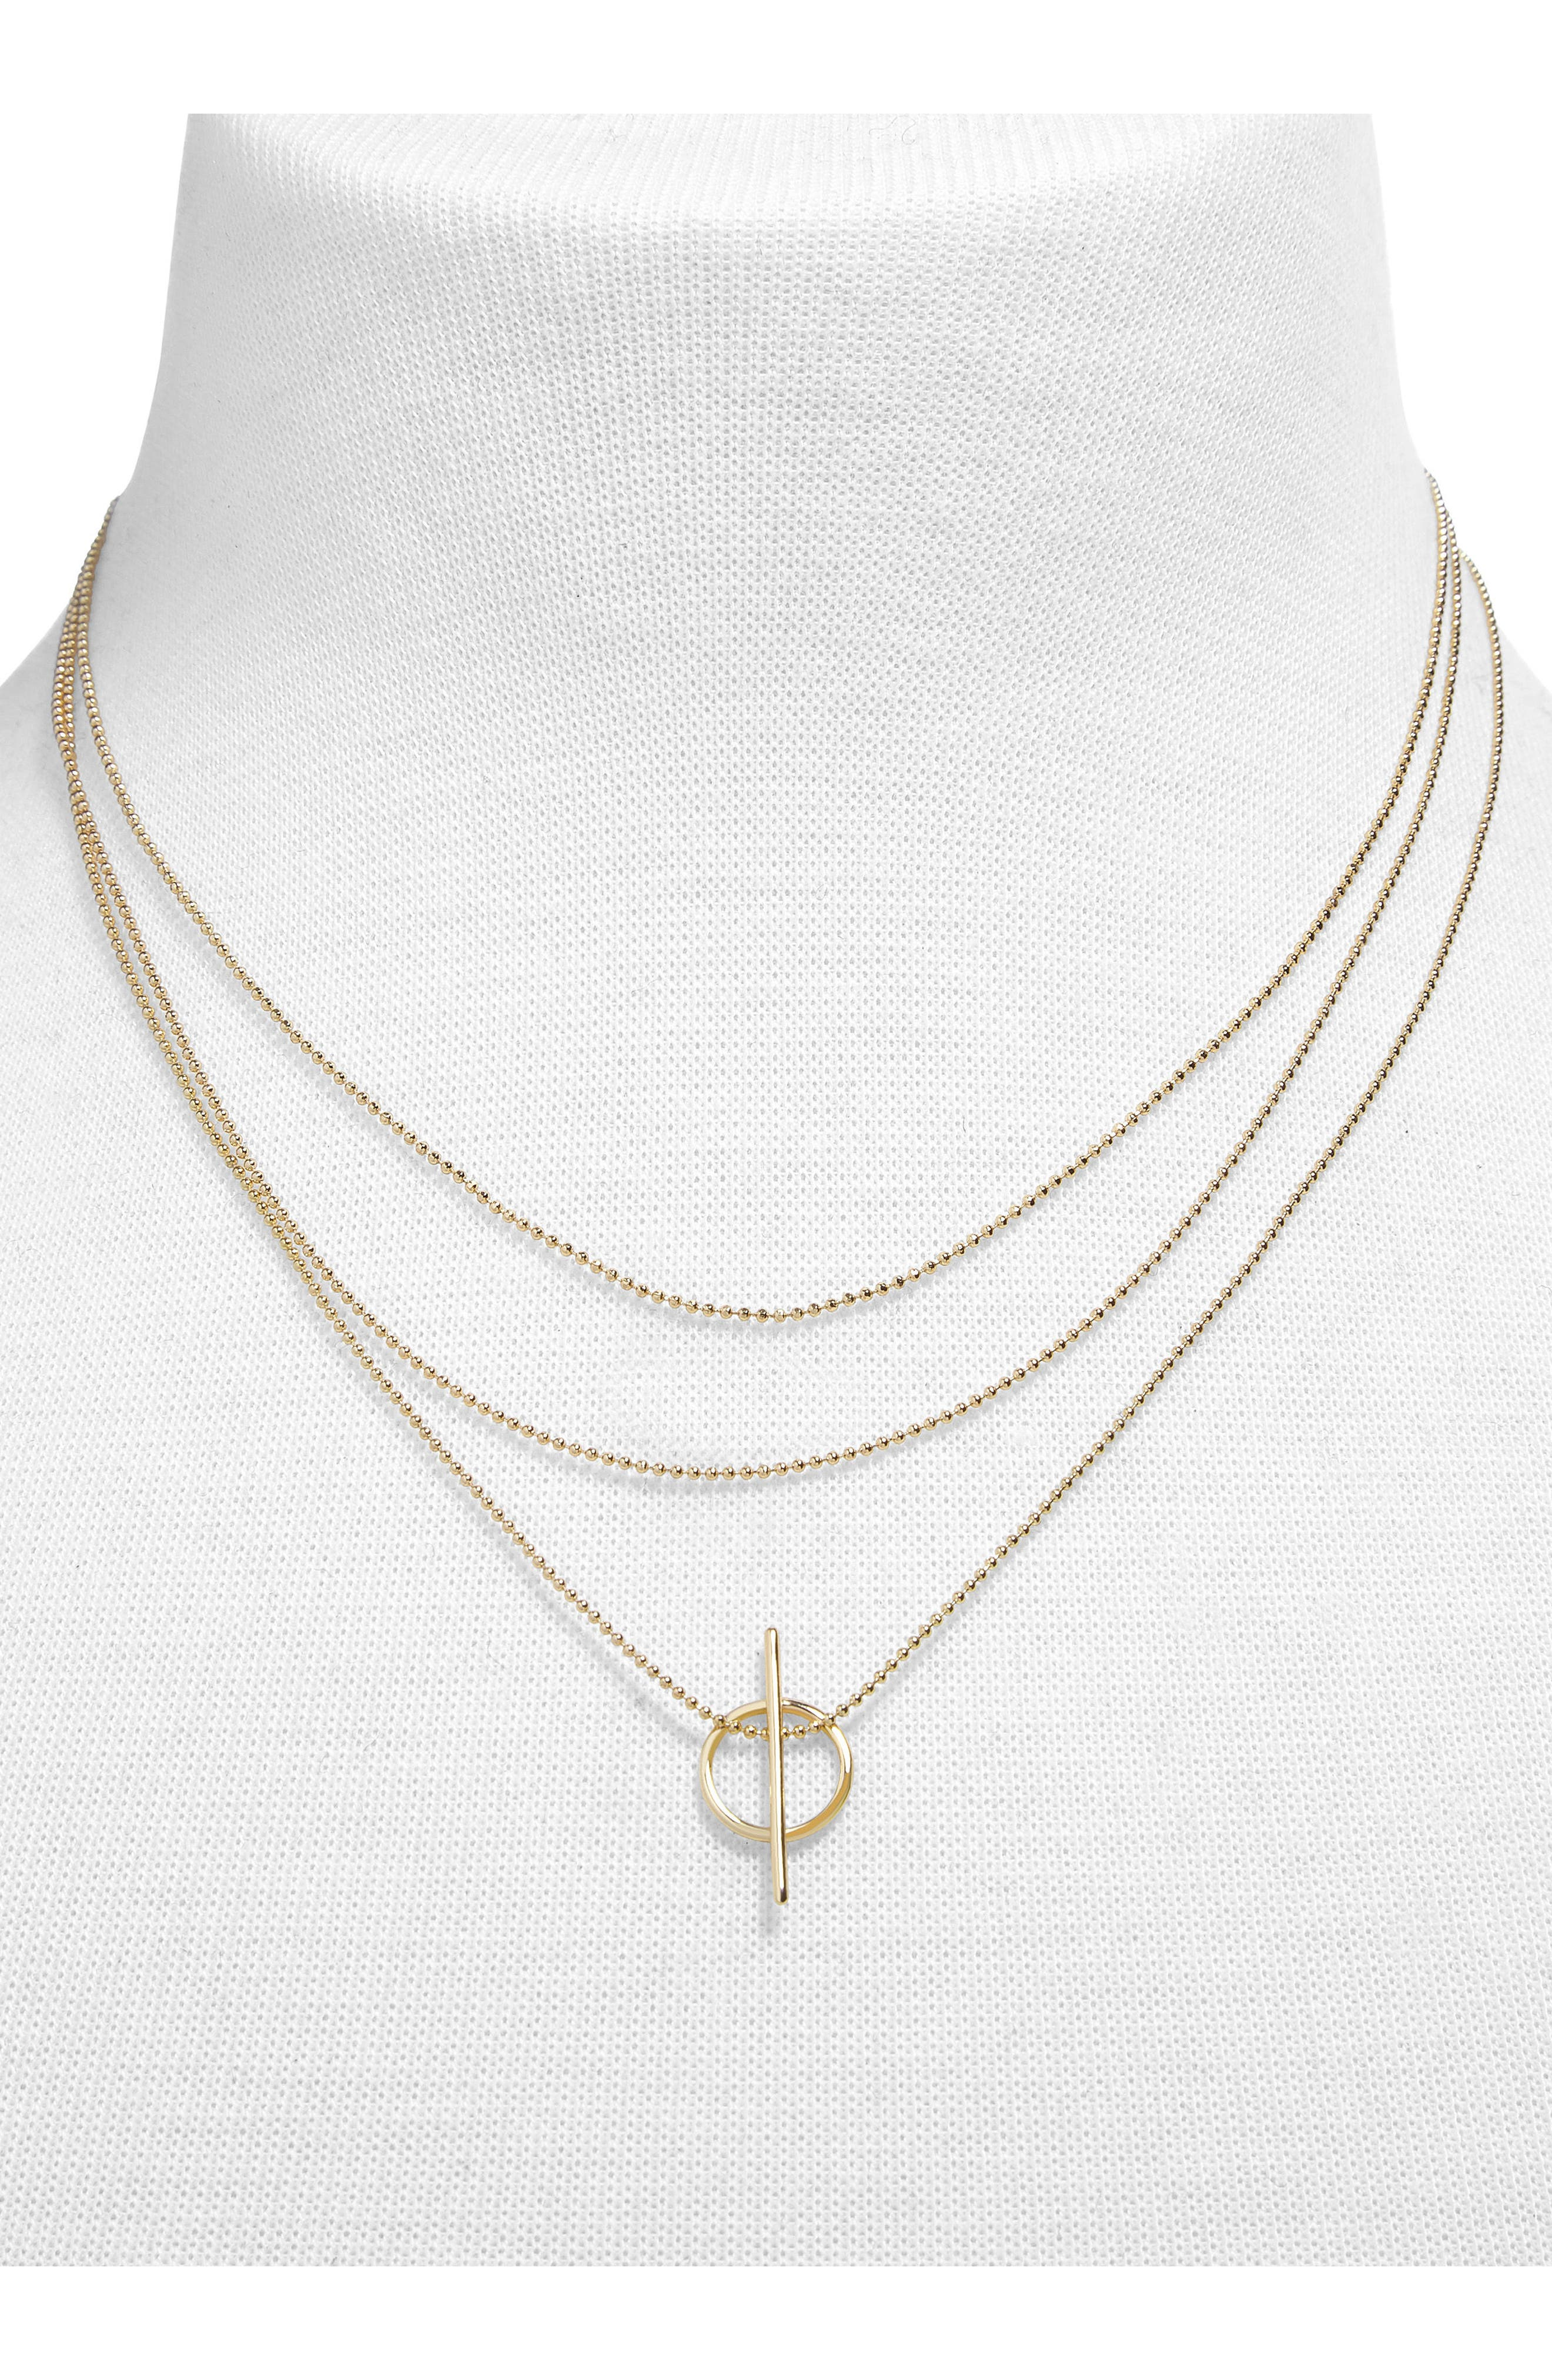 Delicate Bead Chain Necklace,                             Alternate thumbnail 2, color,                             711